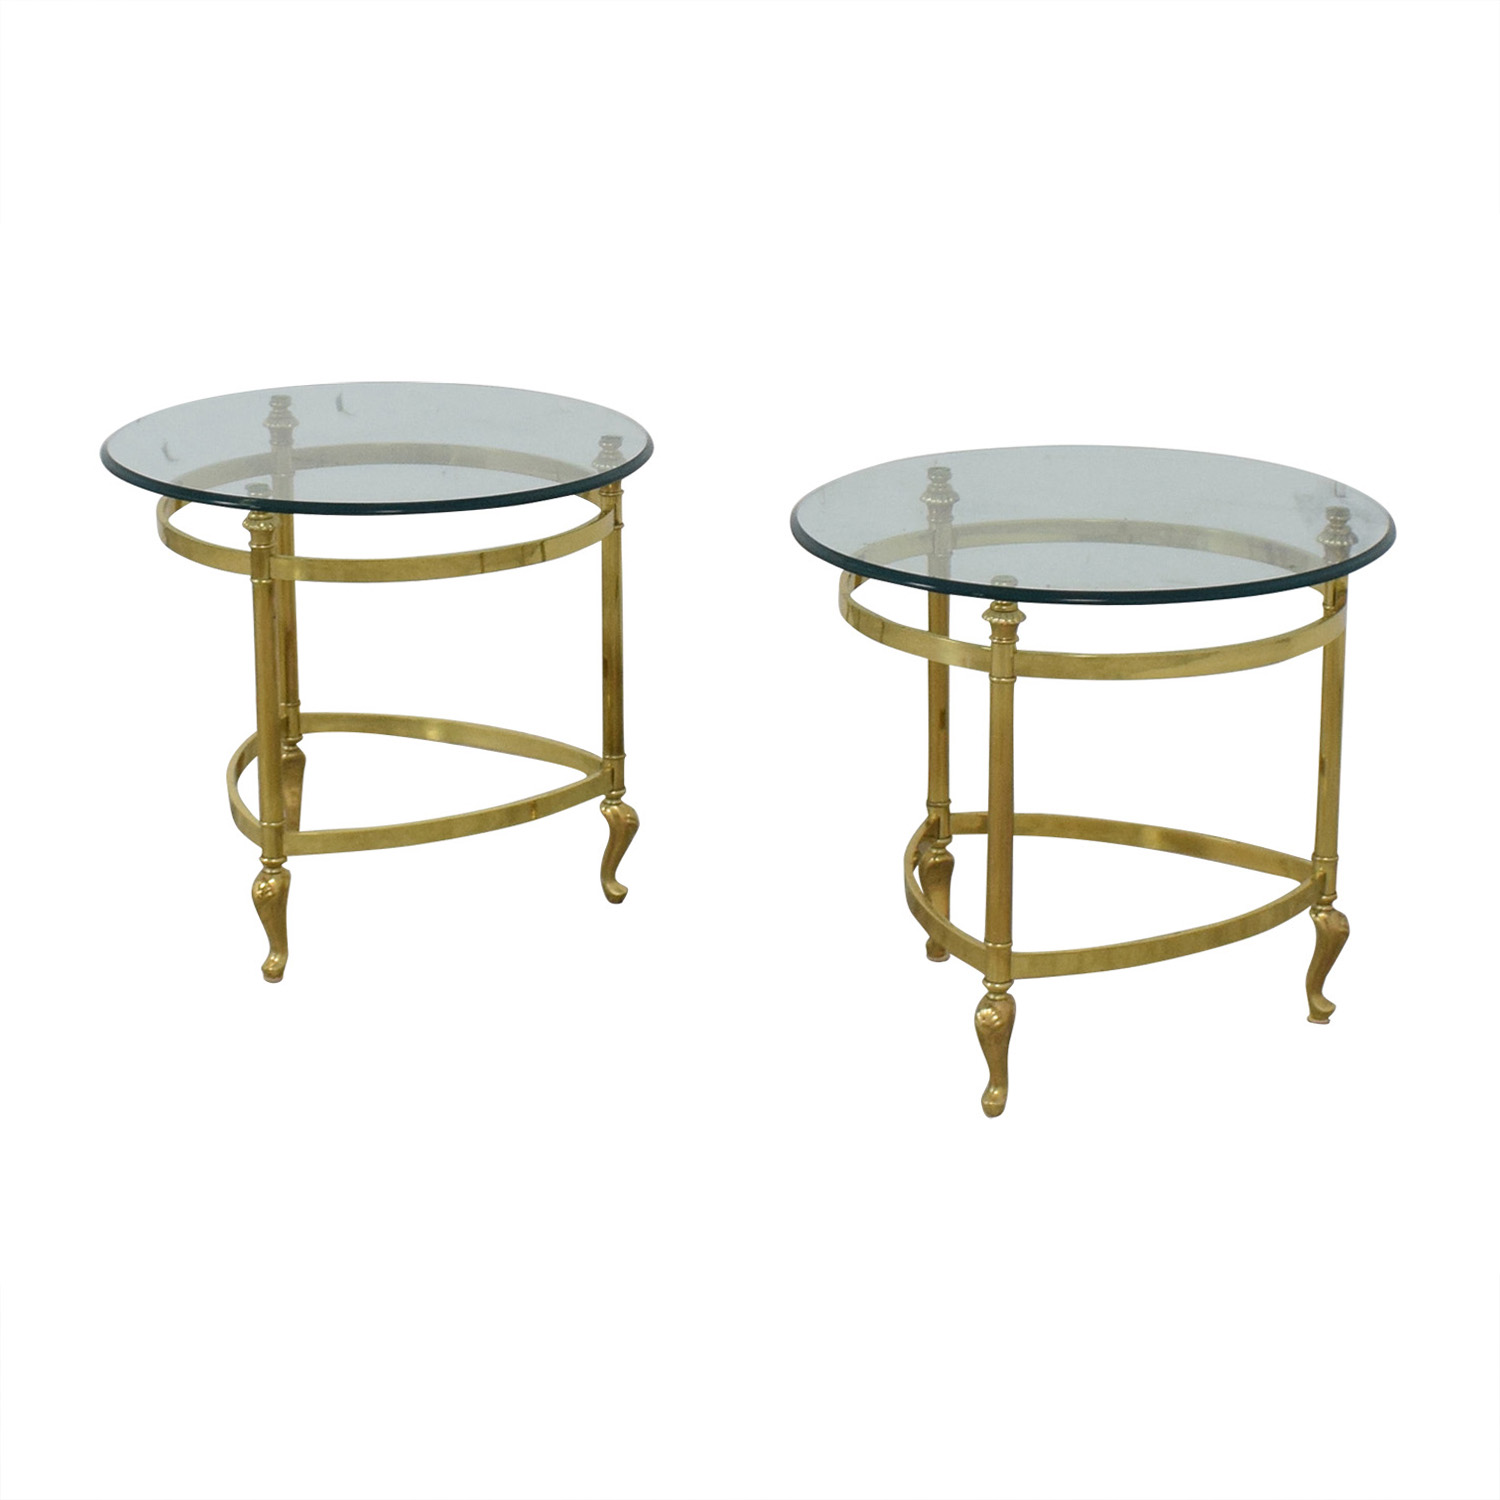 Sleek Glass and Gold End Tables / Tables